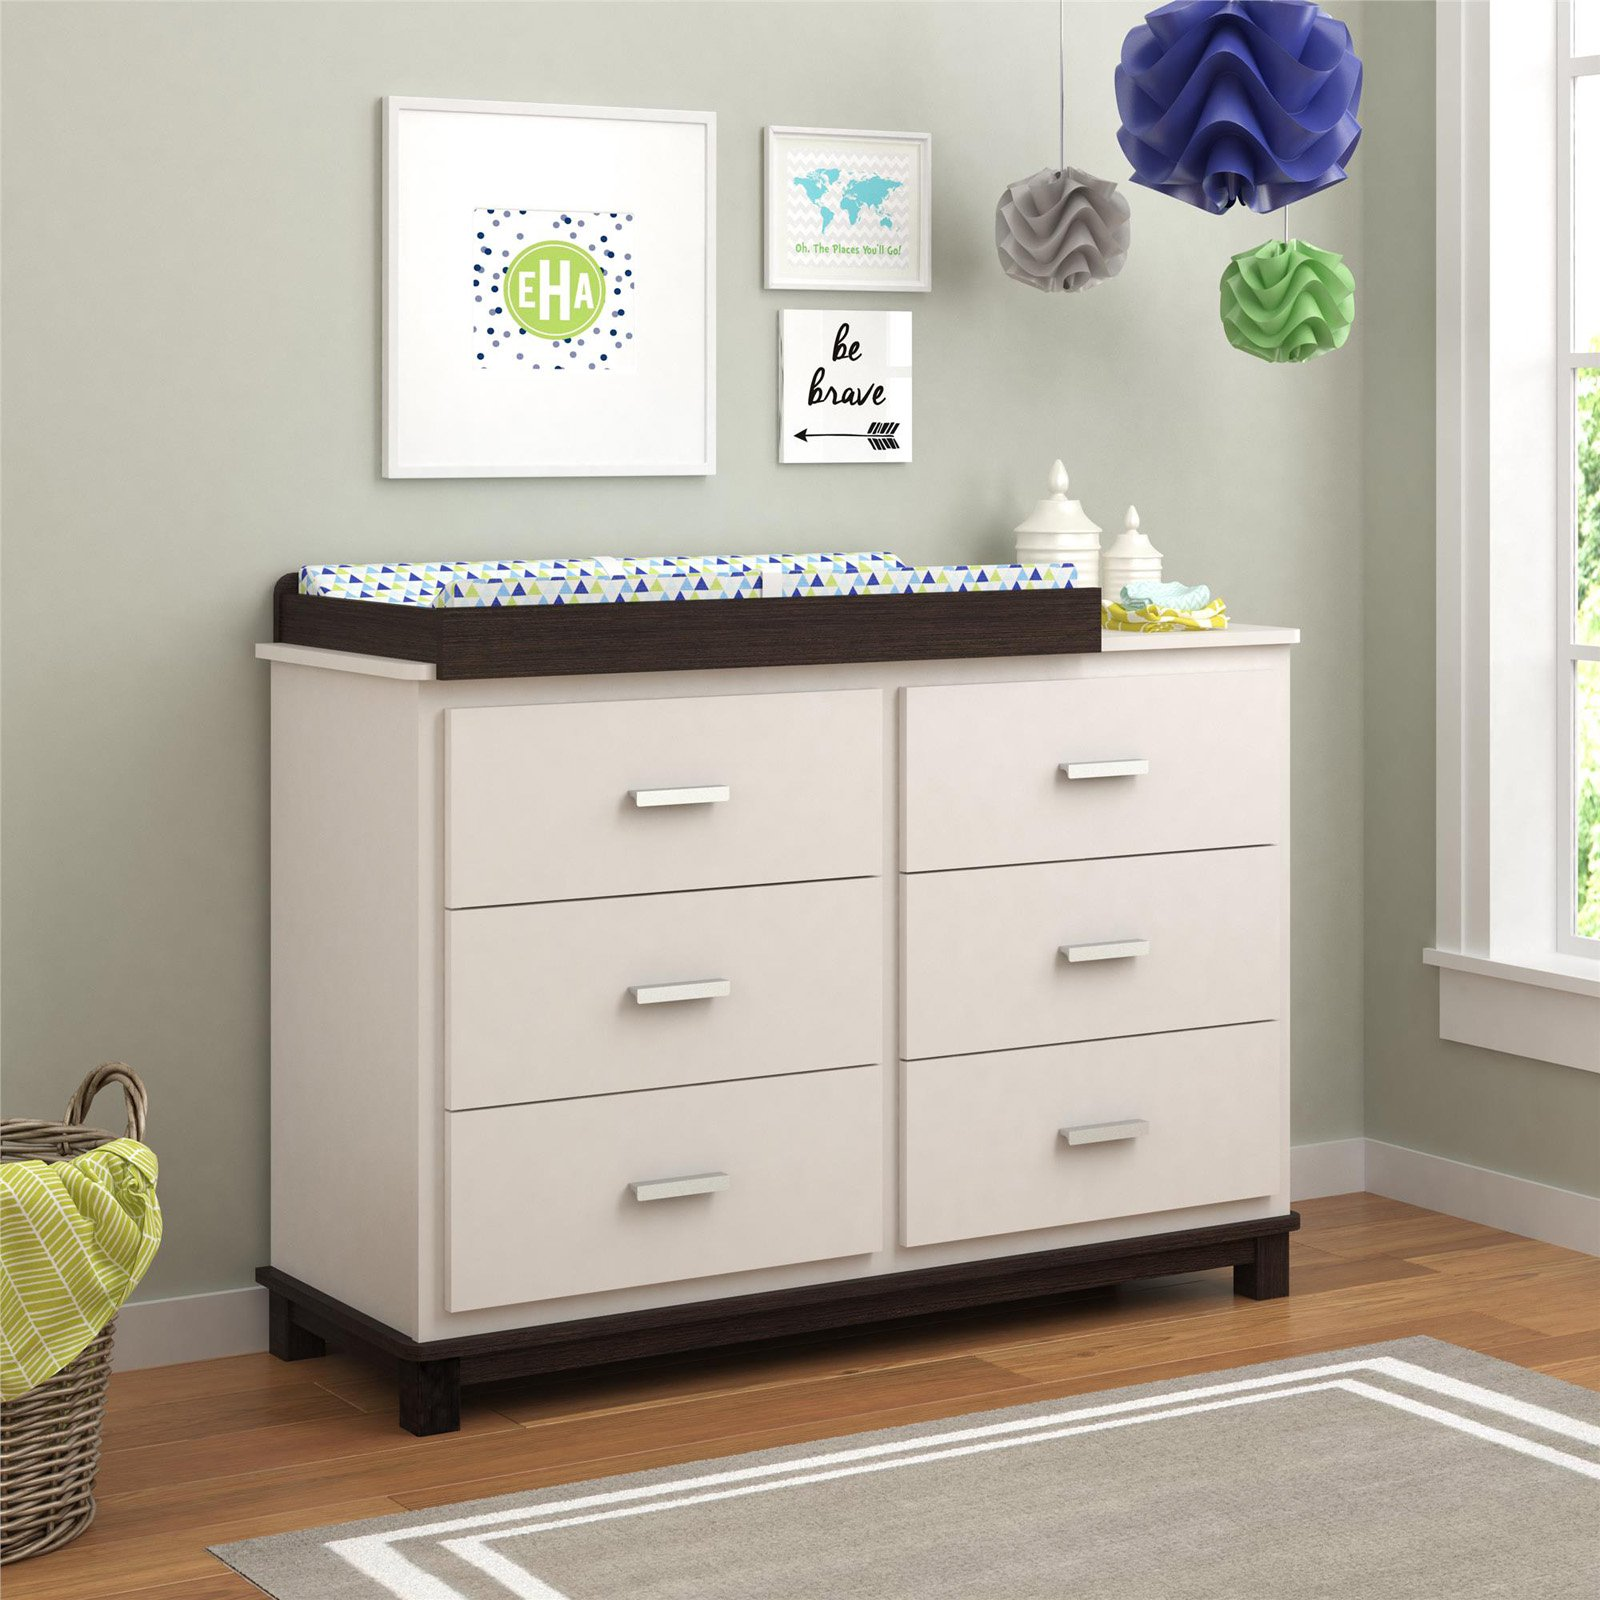 Cosco Leni 6 Drawer Dresser with Changing Table - White S...